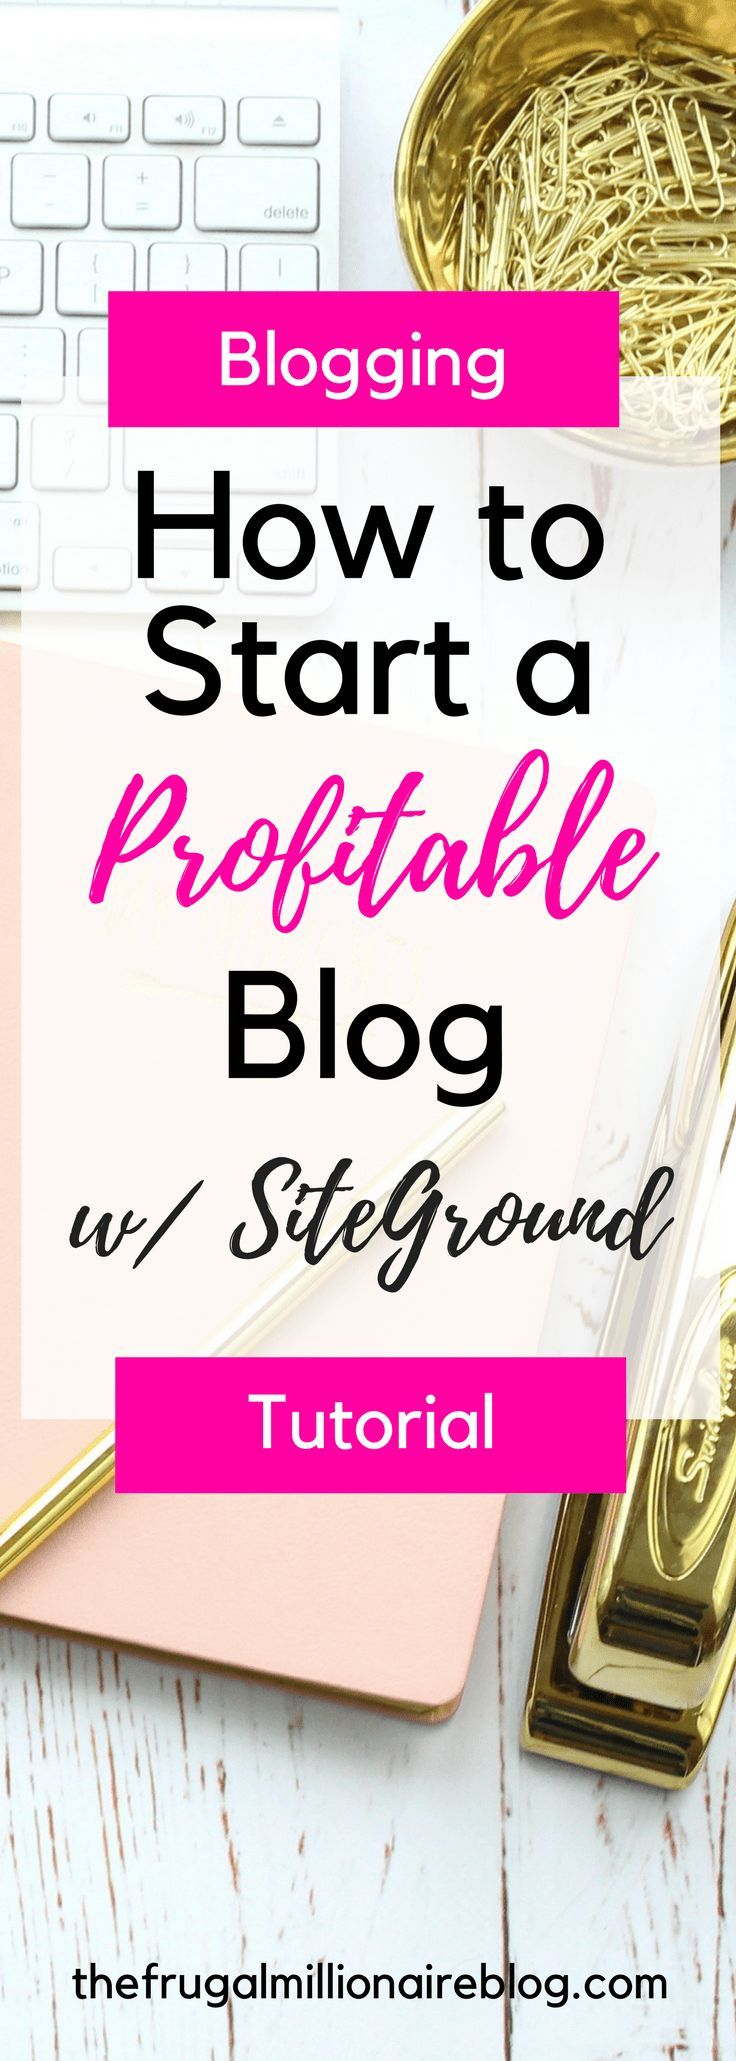 How to start a blog on SiteGround. Make money blogging! Blogging tutorial for beginners.